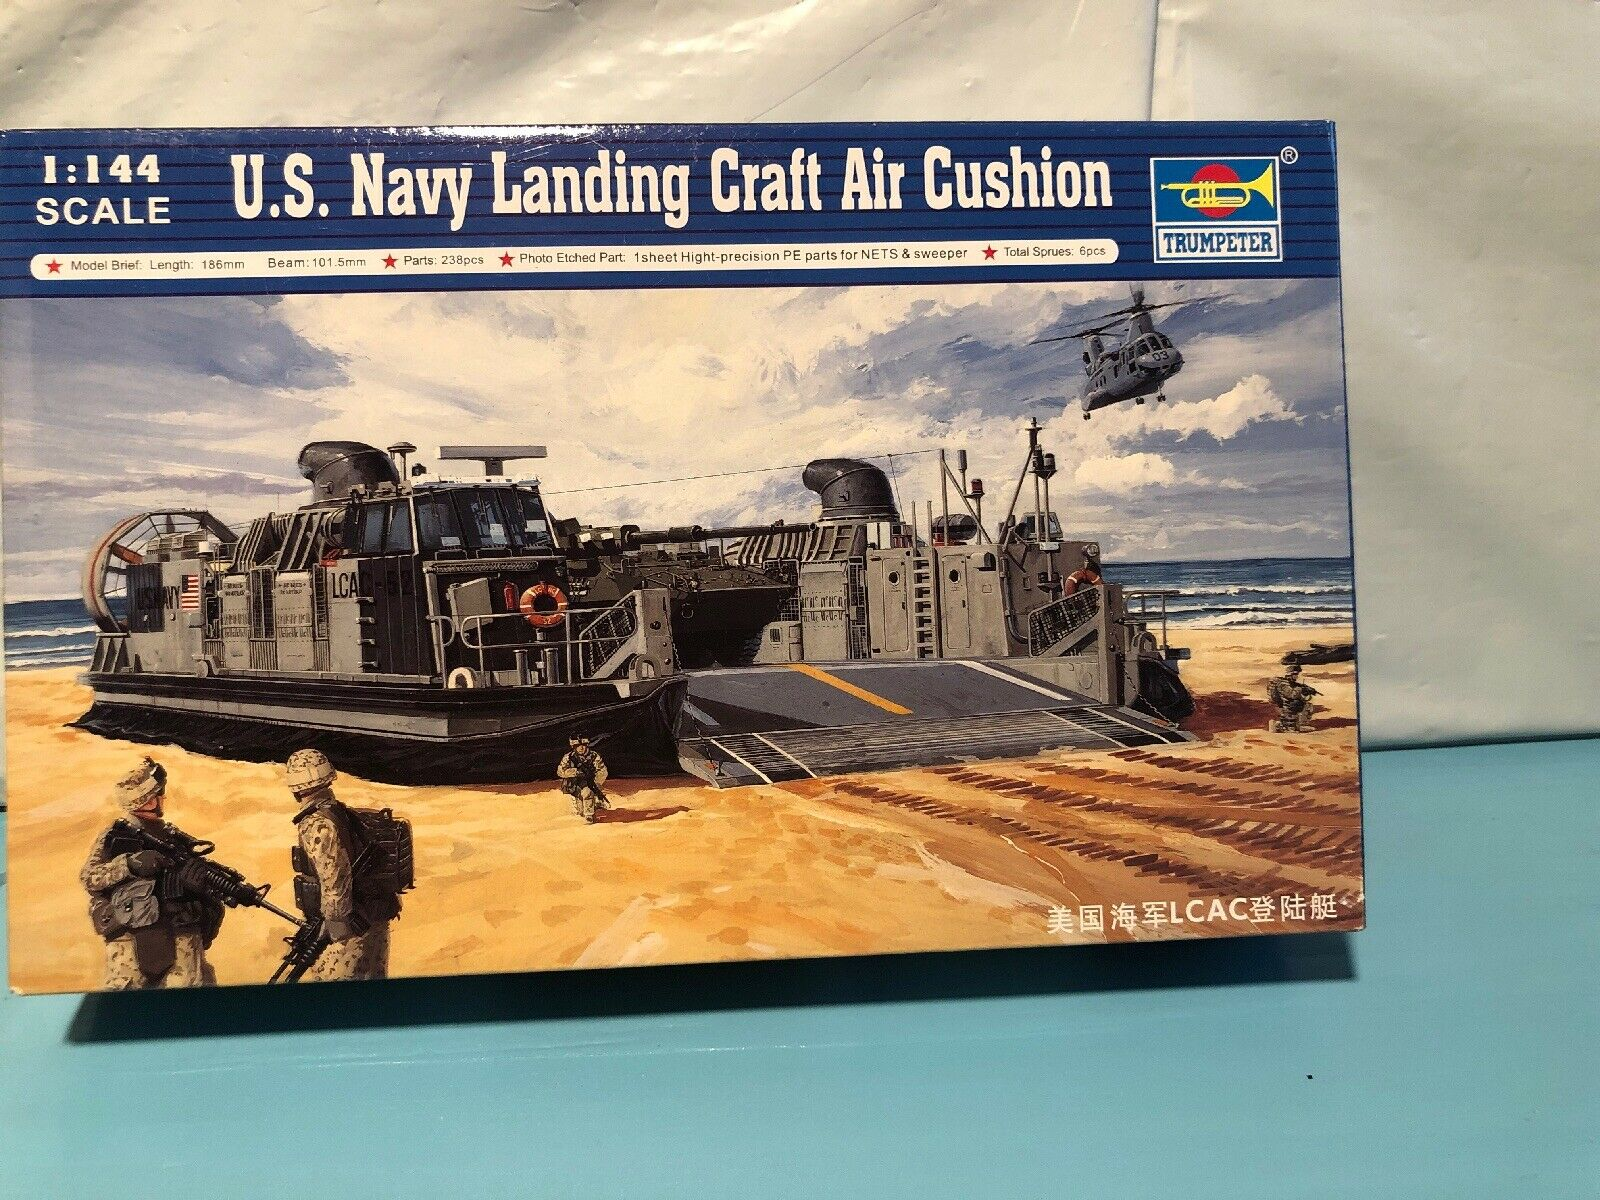 U.S NAVY LANDING CRAFT AIR CUSHION TRUMPETER 1 144 Scale 00107